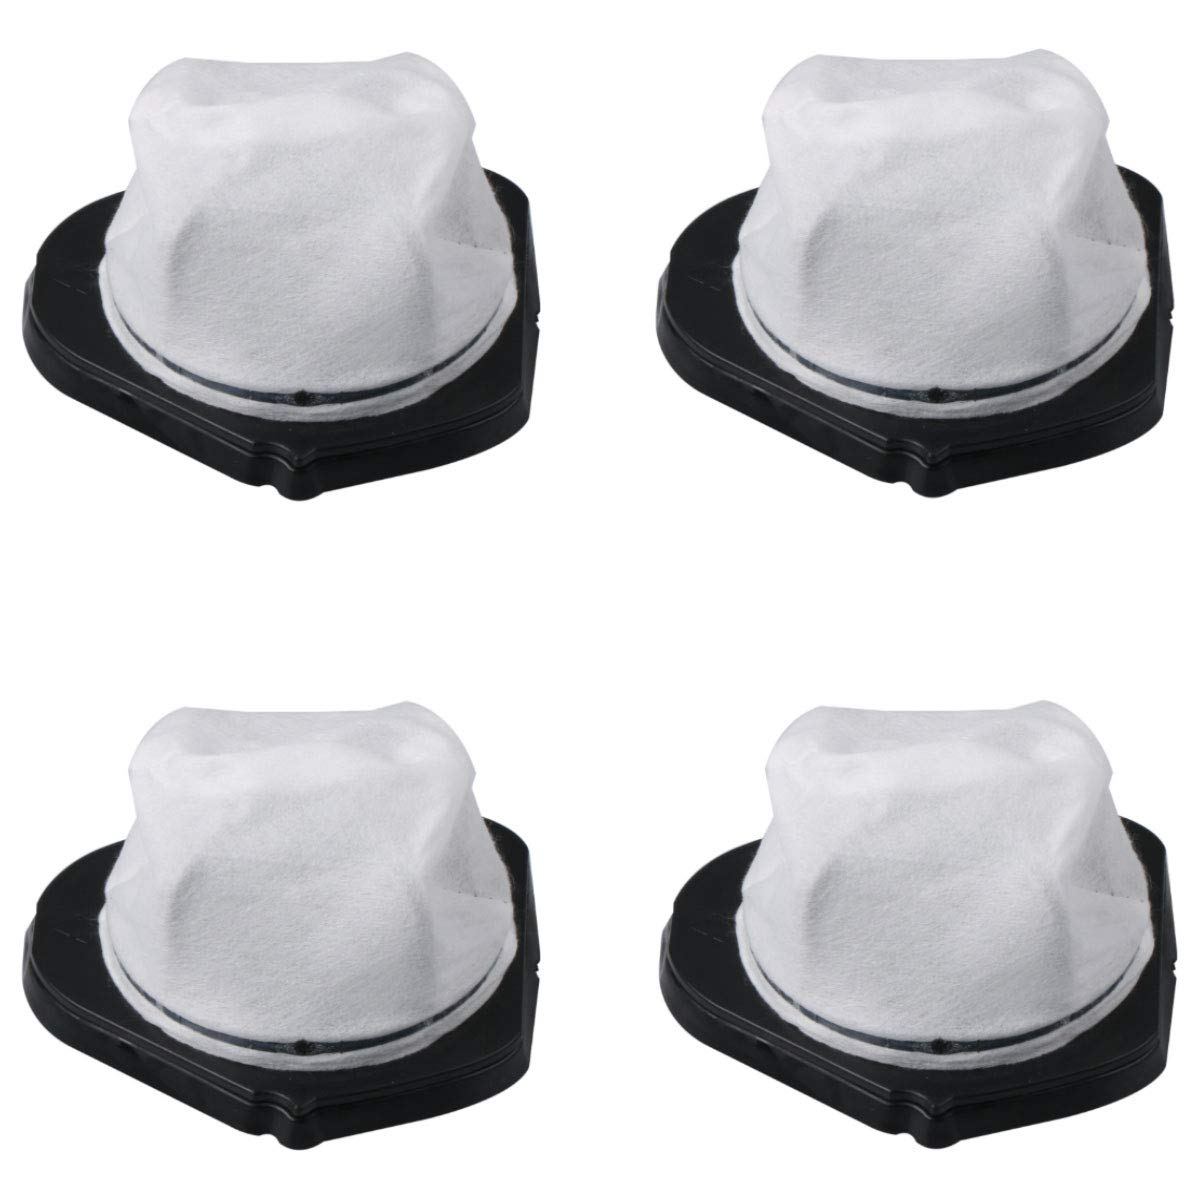 Aunifun 4 Pack Dust Cup Filters for Shark SV75Z Pet-Perfect Cordless Bagless Portable Hand Vacuum and Shark SV780 Shark SV726N, Replacement Part# XF769, XSB769N, XSB769, XSB736N